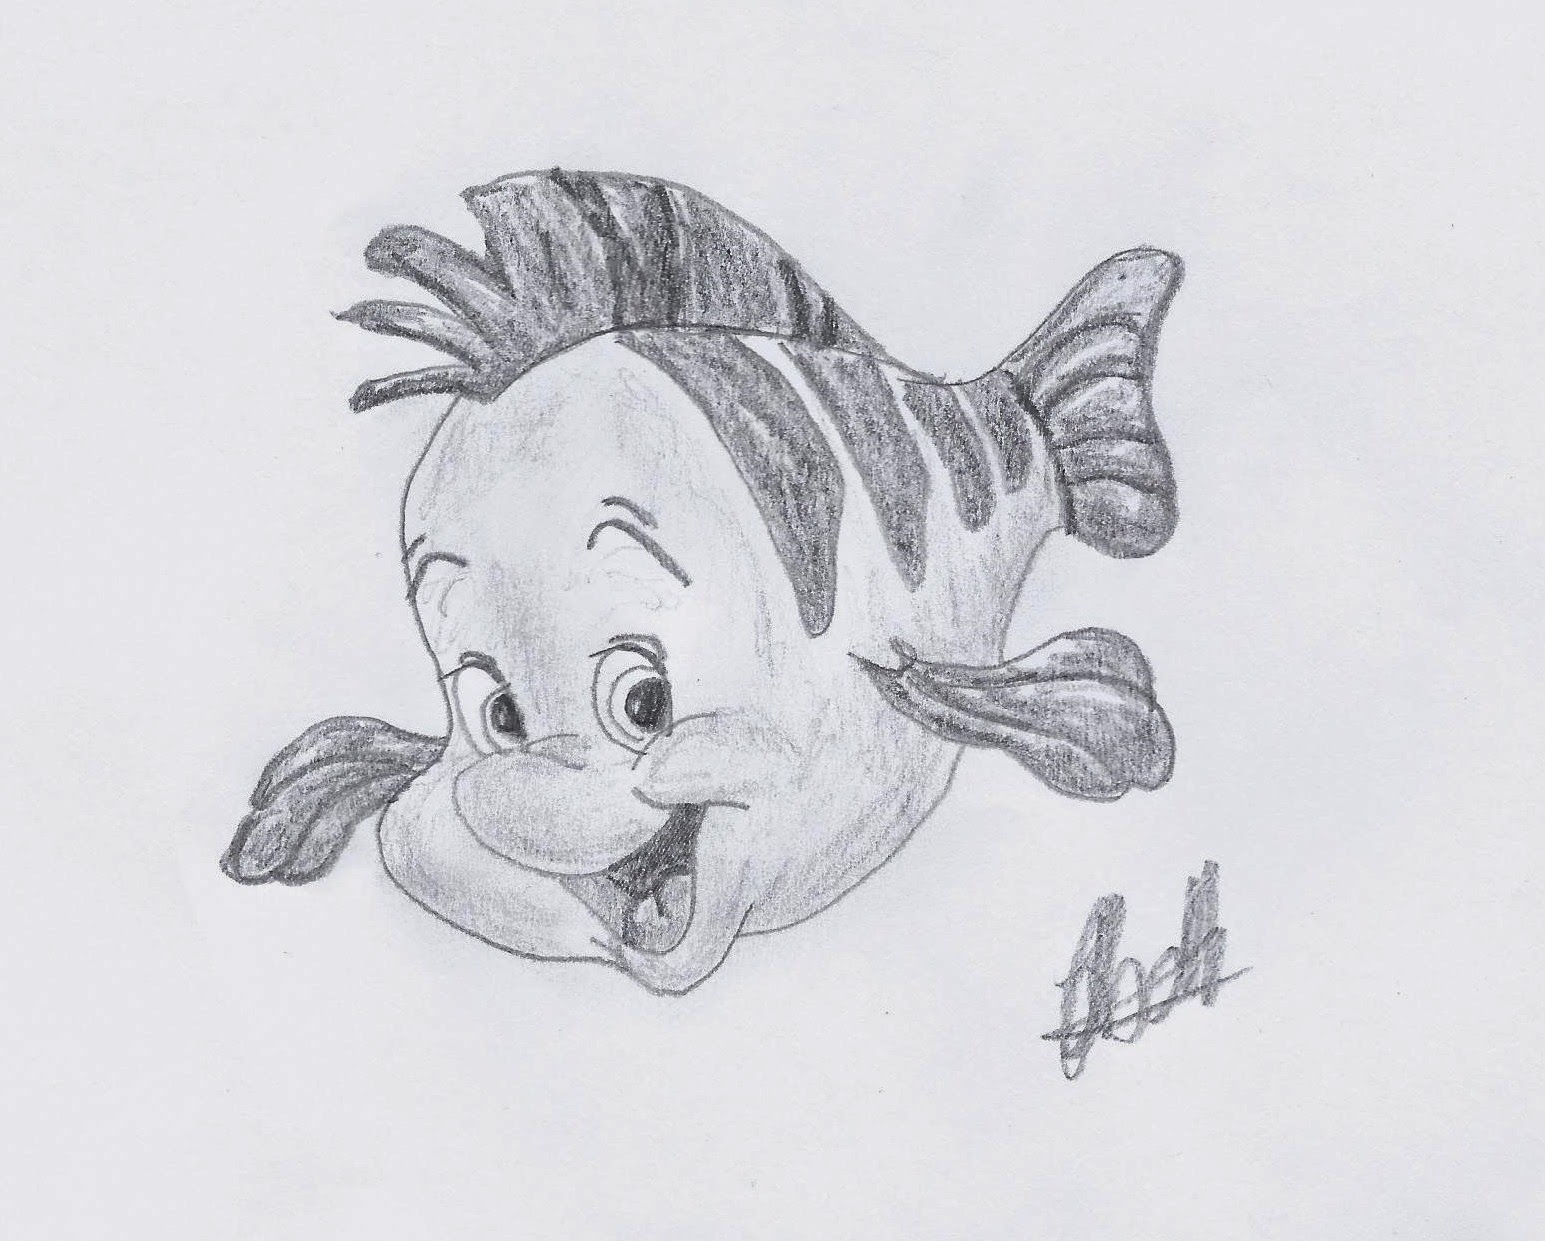 Flounder from The Little Mermaid, Sketch by Jo Linsdell